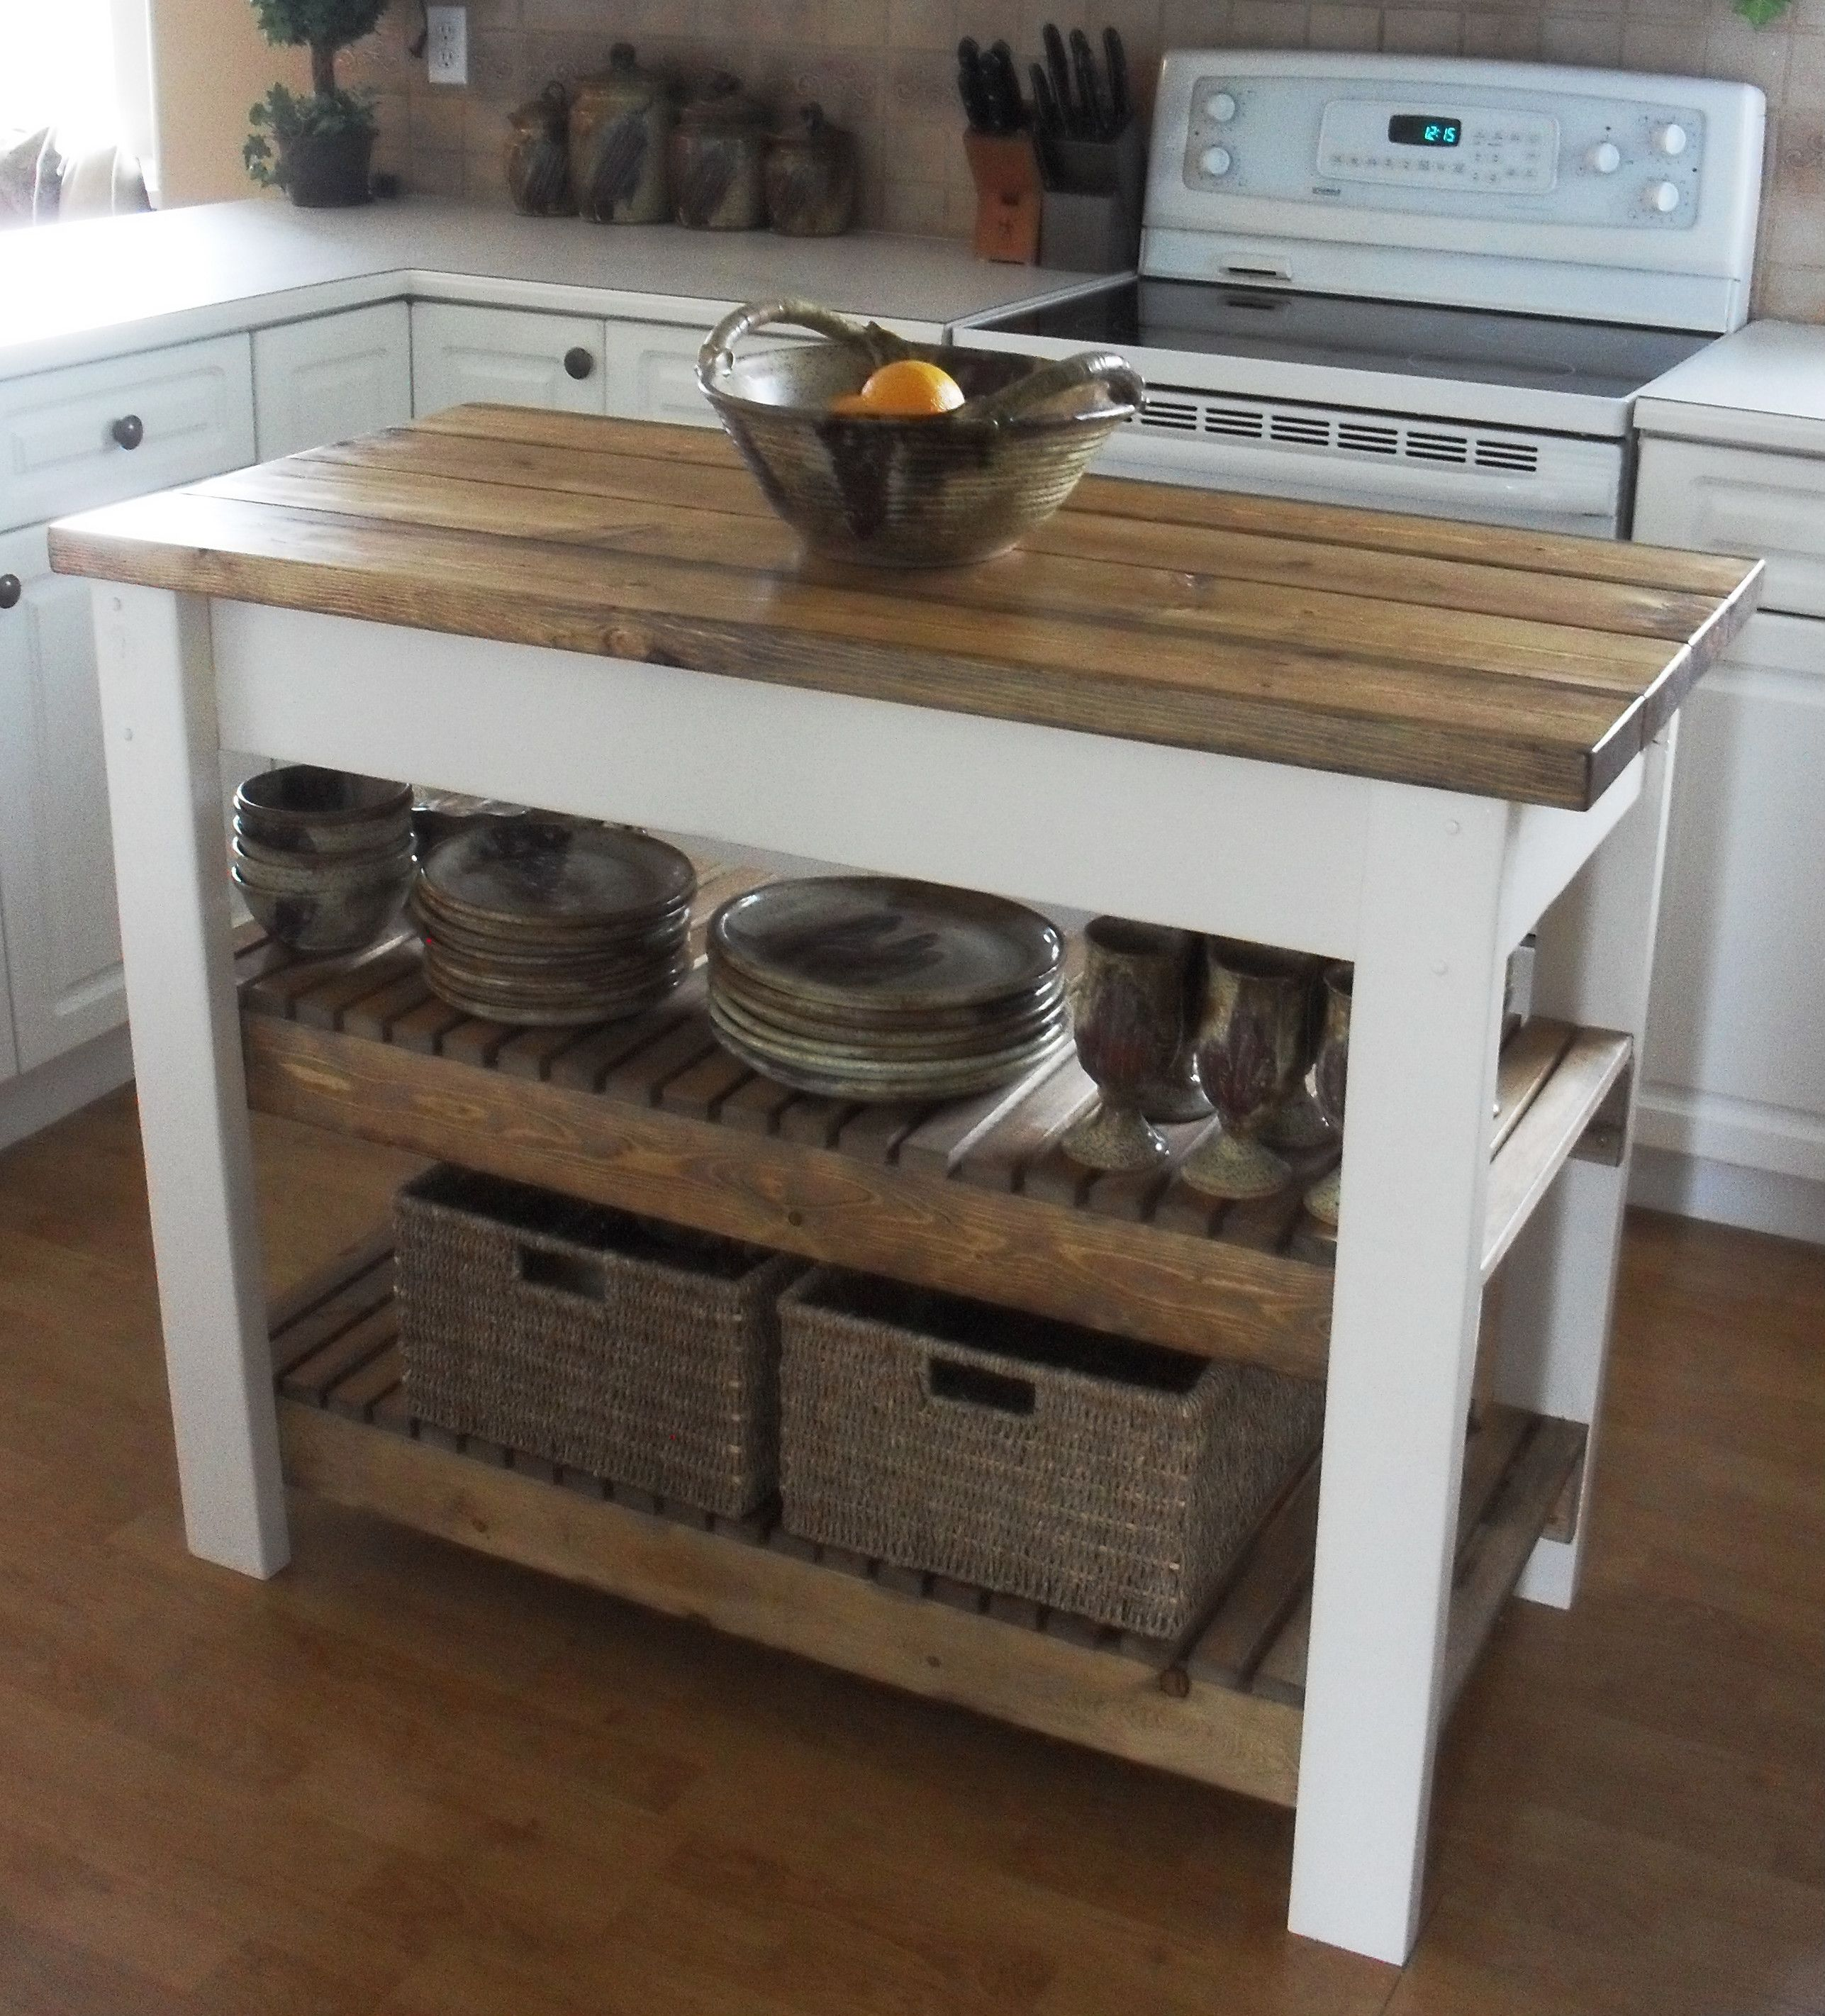 Kitchen Workbench Sink Repair Diy Island 47 In Materials Although I D Probably Extend It Out A Few Inches To Add Seating Baskets Would Be Perfect Place Store Things